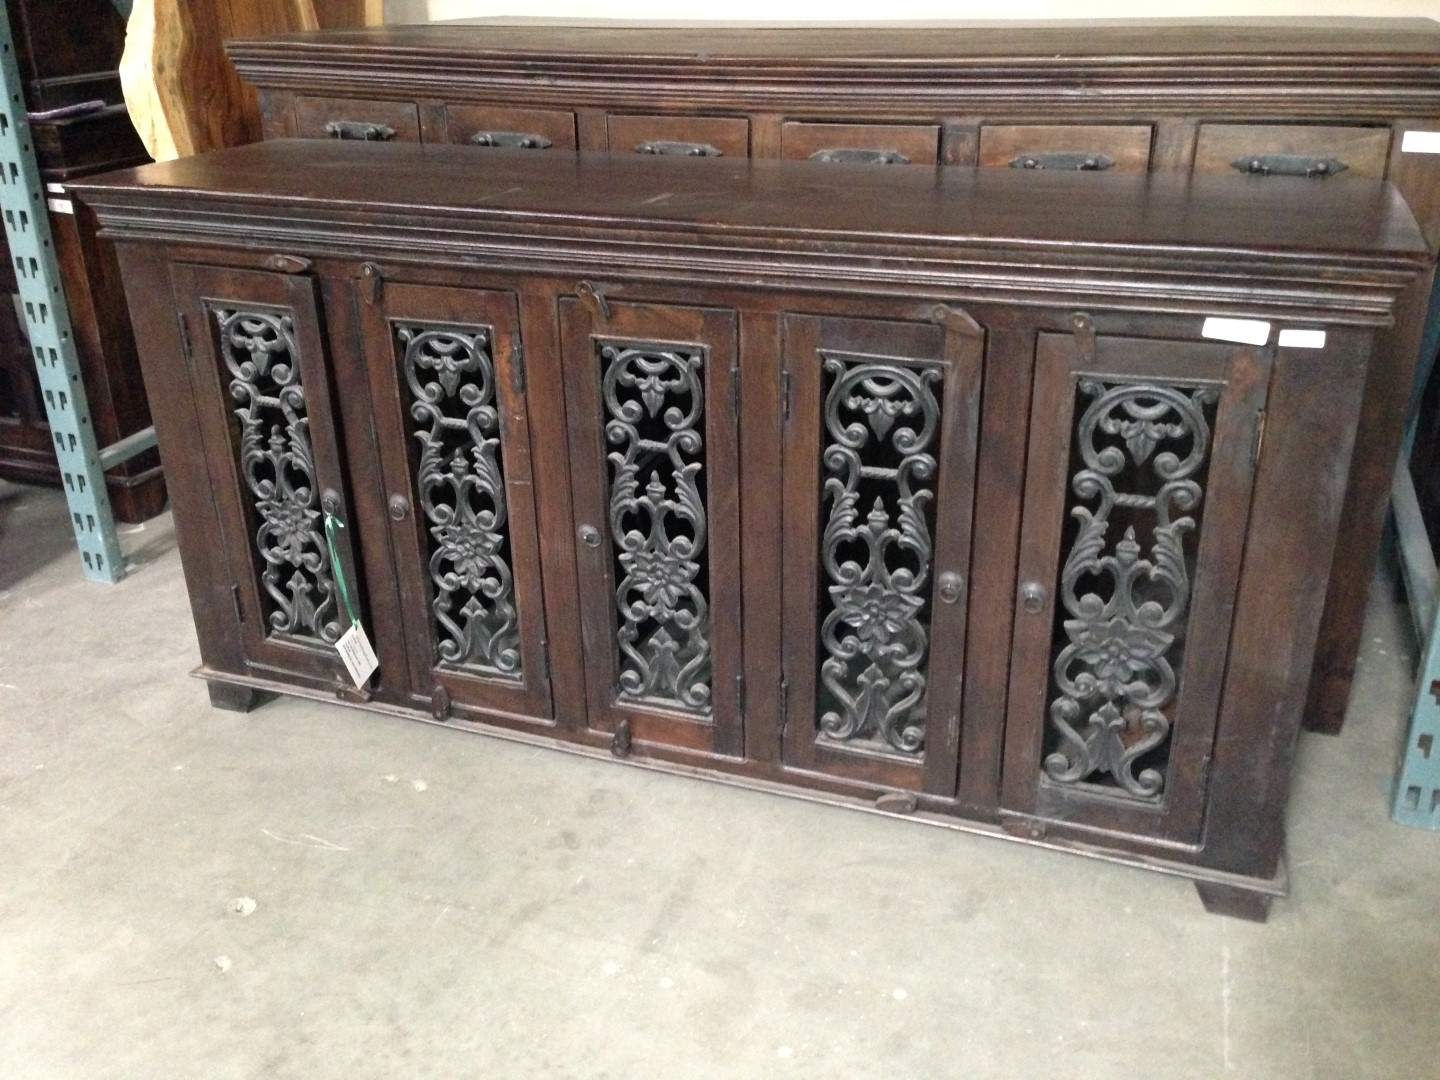 Imported Rustic Sideboards From India, China, Indonesia And Mexico Within Iron Sideboards (View 14 of 30)